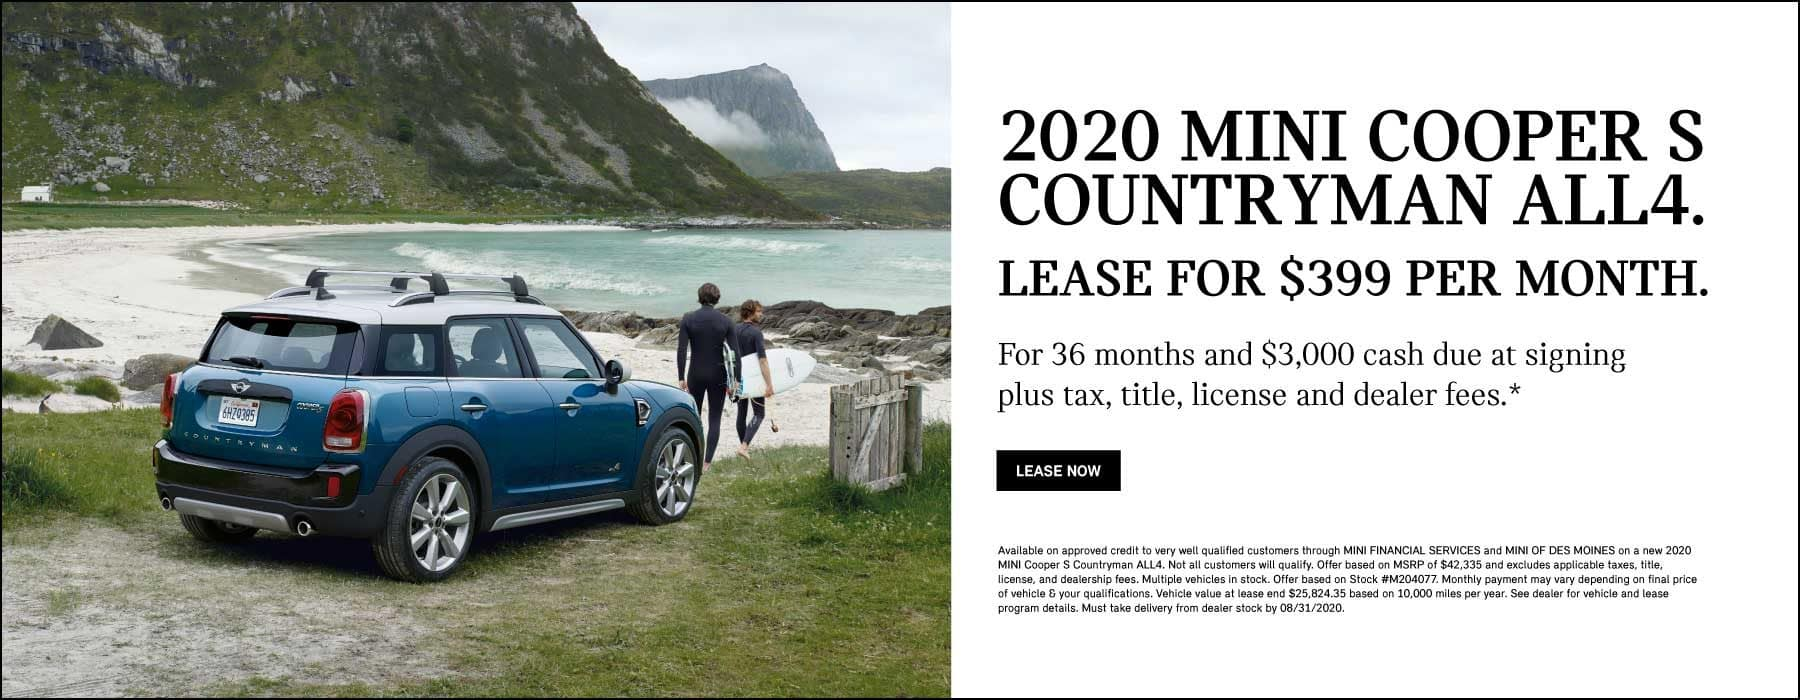 2020 MINI Cooper S Countryman ALL4 $399 per month 36 months 10,000 miles per year $3,000 due at signing plus tax, title, license and dealer fees.